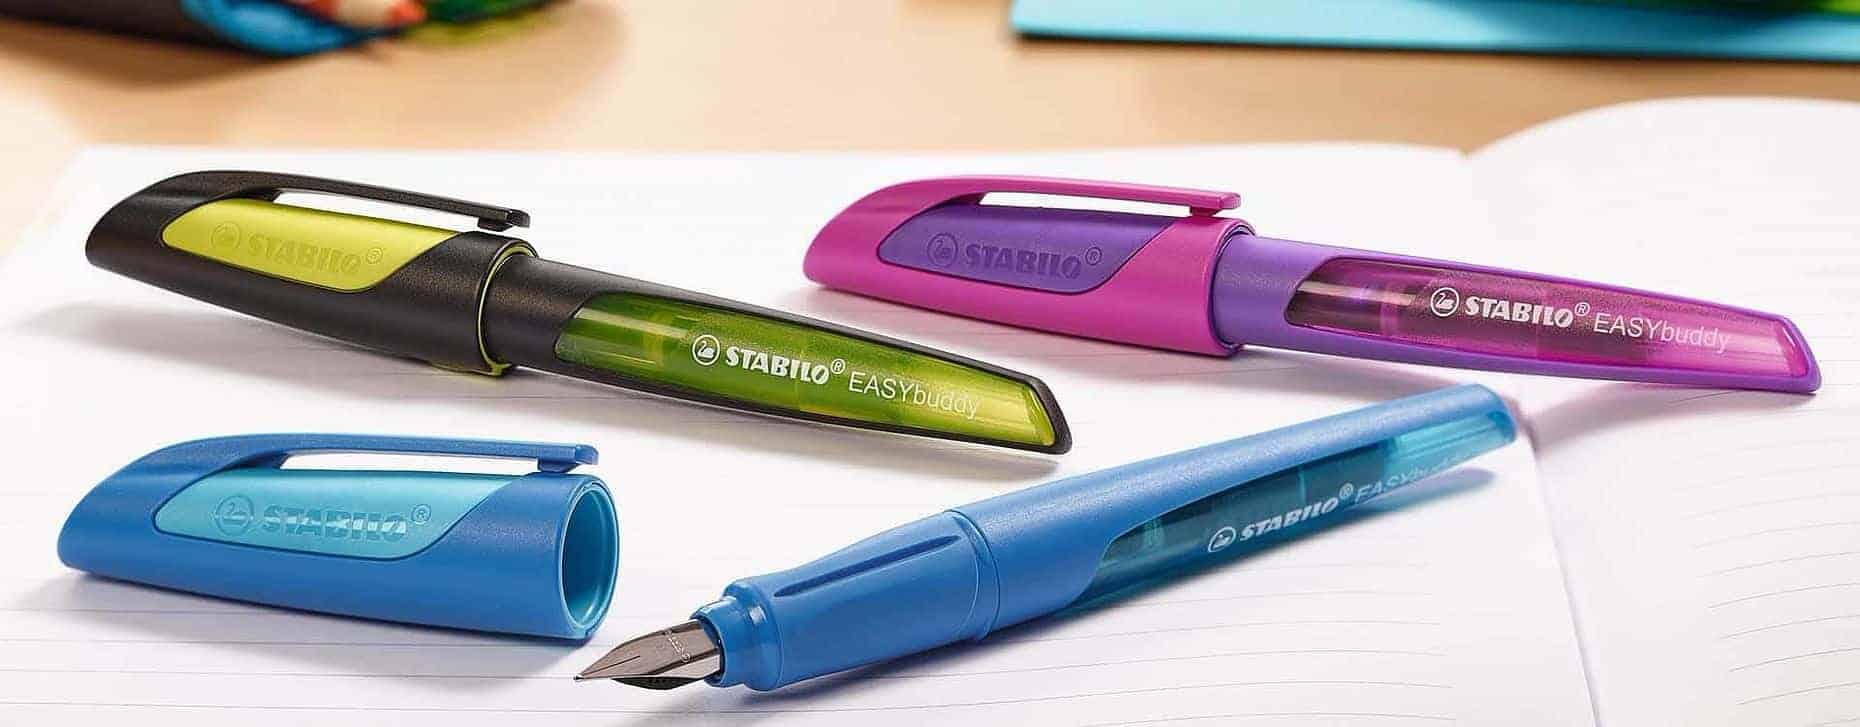 STABILO| National Handwriting Day [AD-GIFTED]